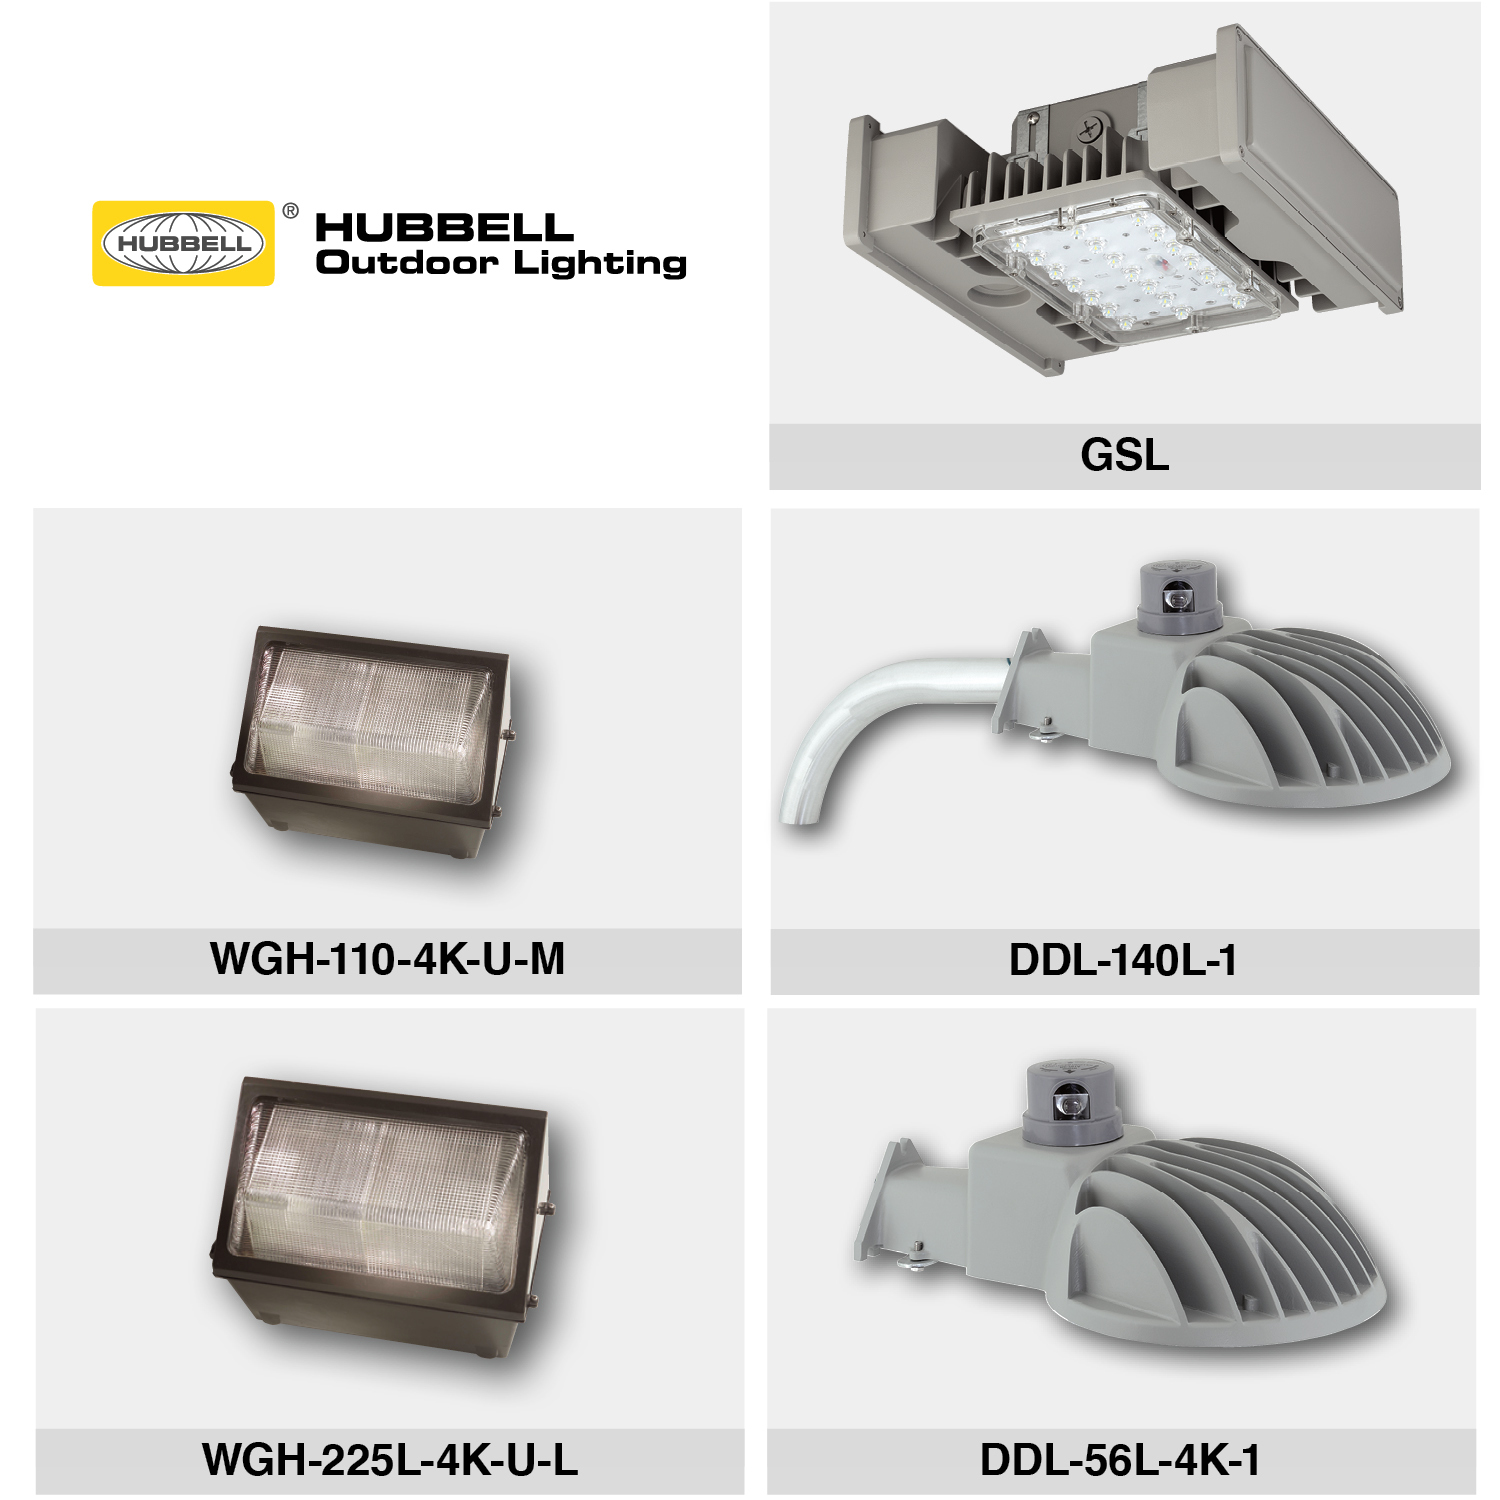 Hubbell Outdoor Lighting Launches New Led Parking Garage Fixture Business Wire